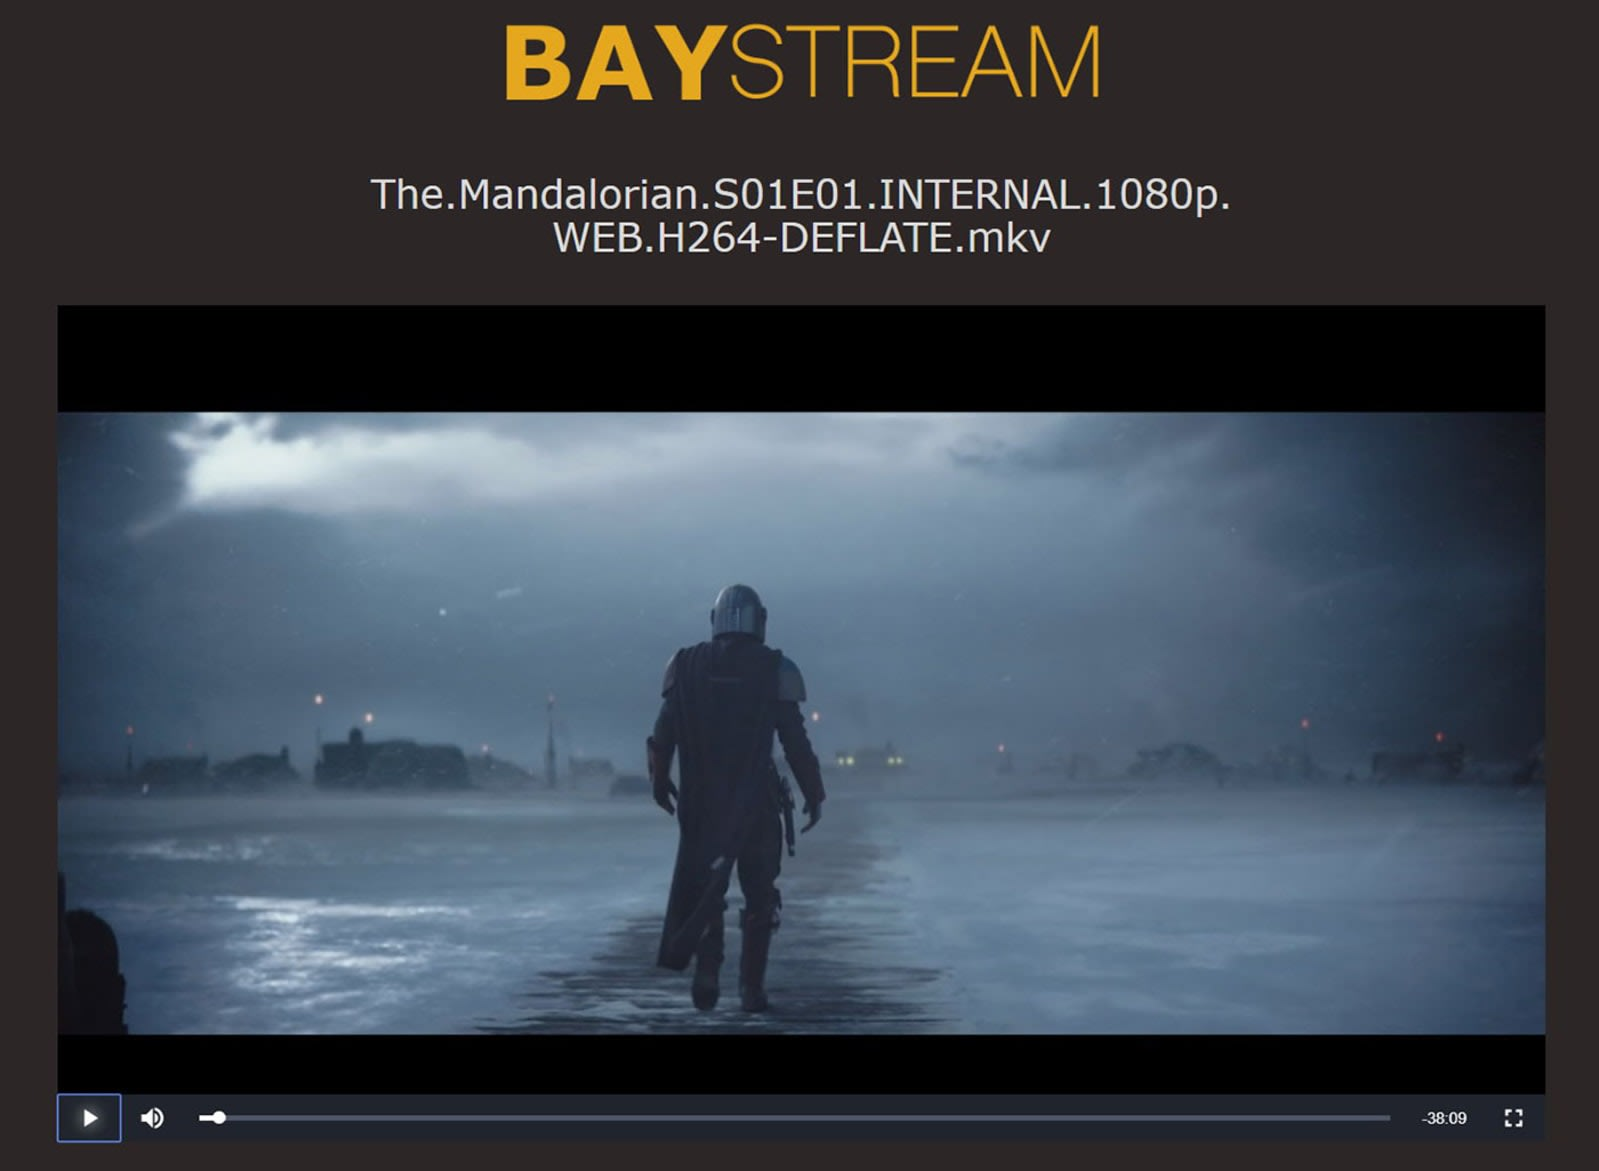 The Pirate Bay is testing pirate streaming again